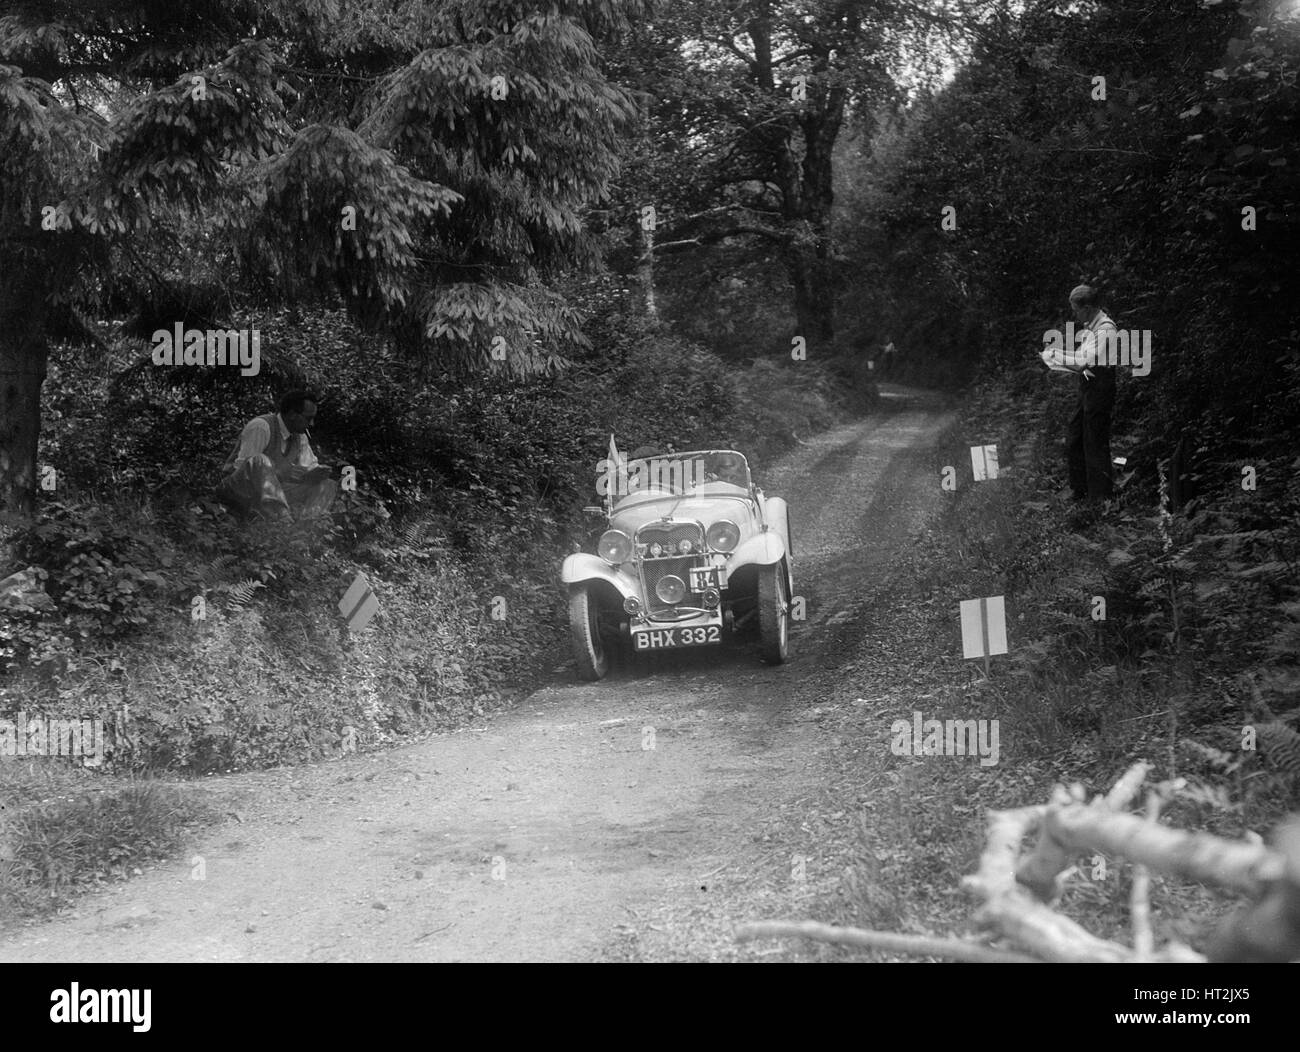 1934 Singer Le Mans of the Candidi Provocatores team taking part in a motoring trial, late 1930s. Artist: Bill Brunell. - Stock Image